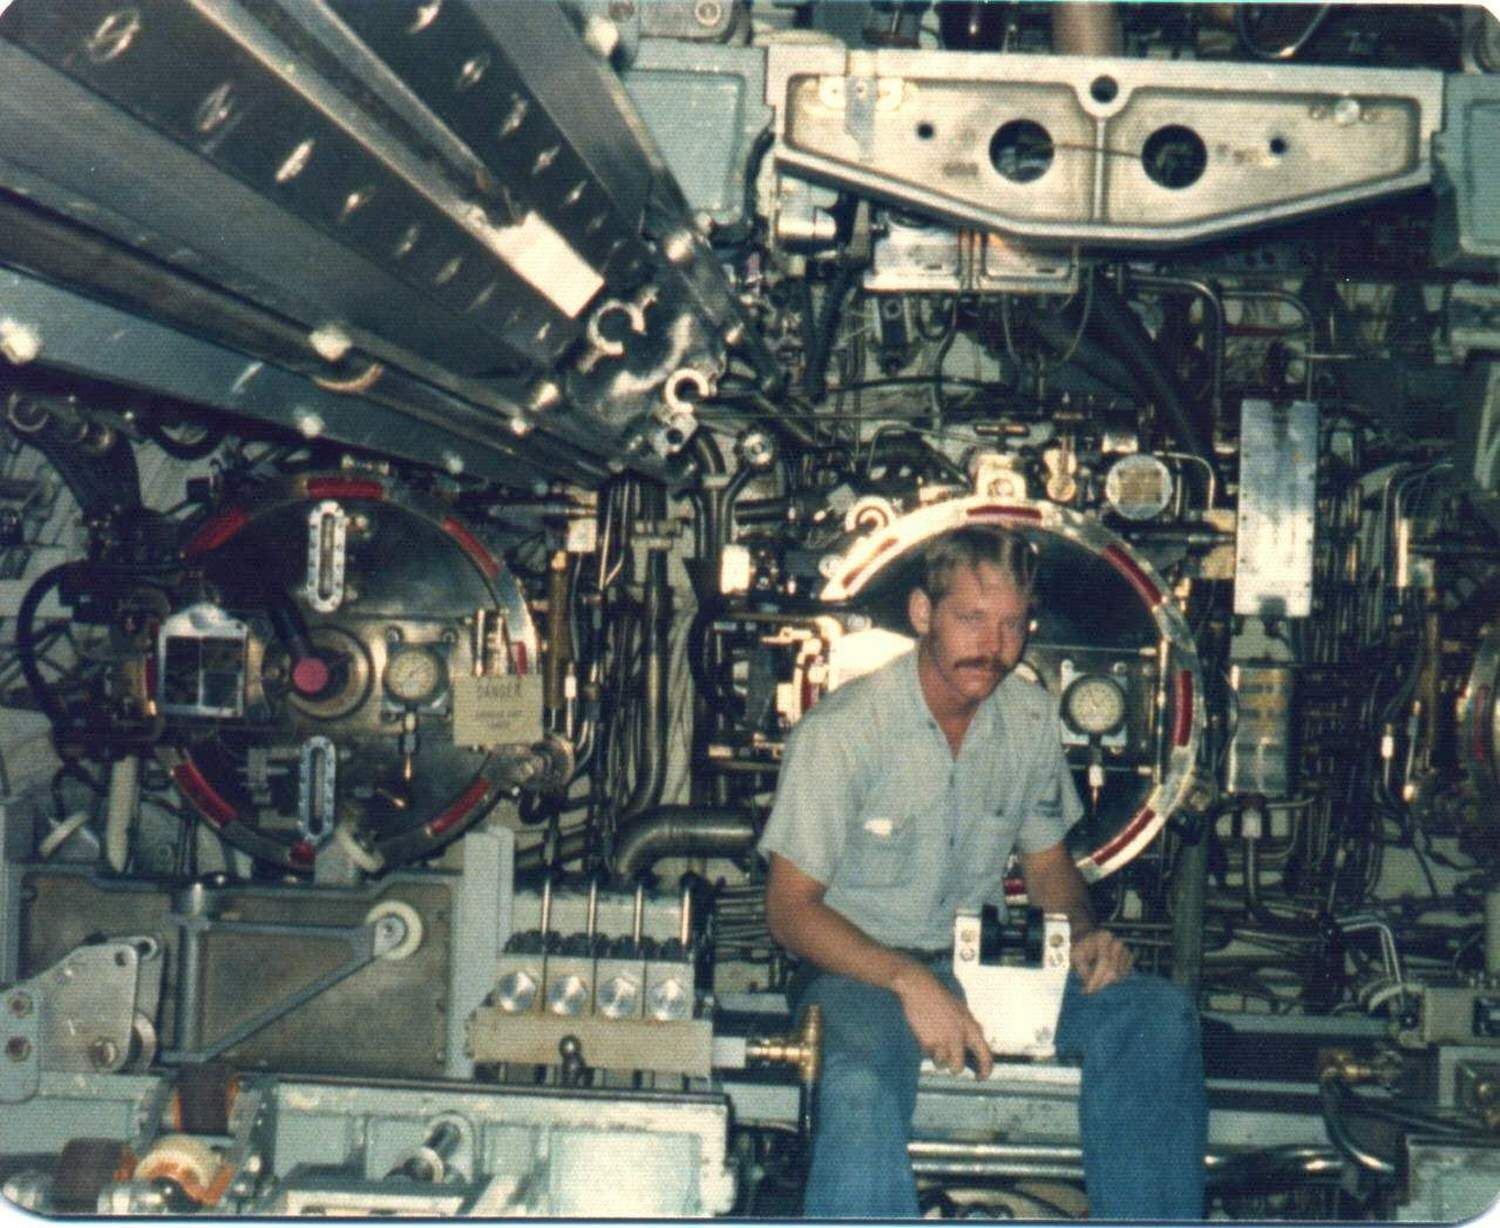 Torpedo Room Uss Blueback I Spent My First Weeks As A Non Qual Bunking Next To Mk 48 S In This Compartment Submarines Us Navy Submarines Naval History